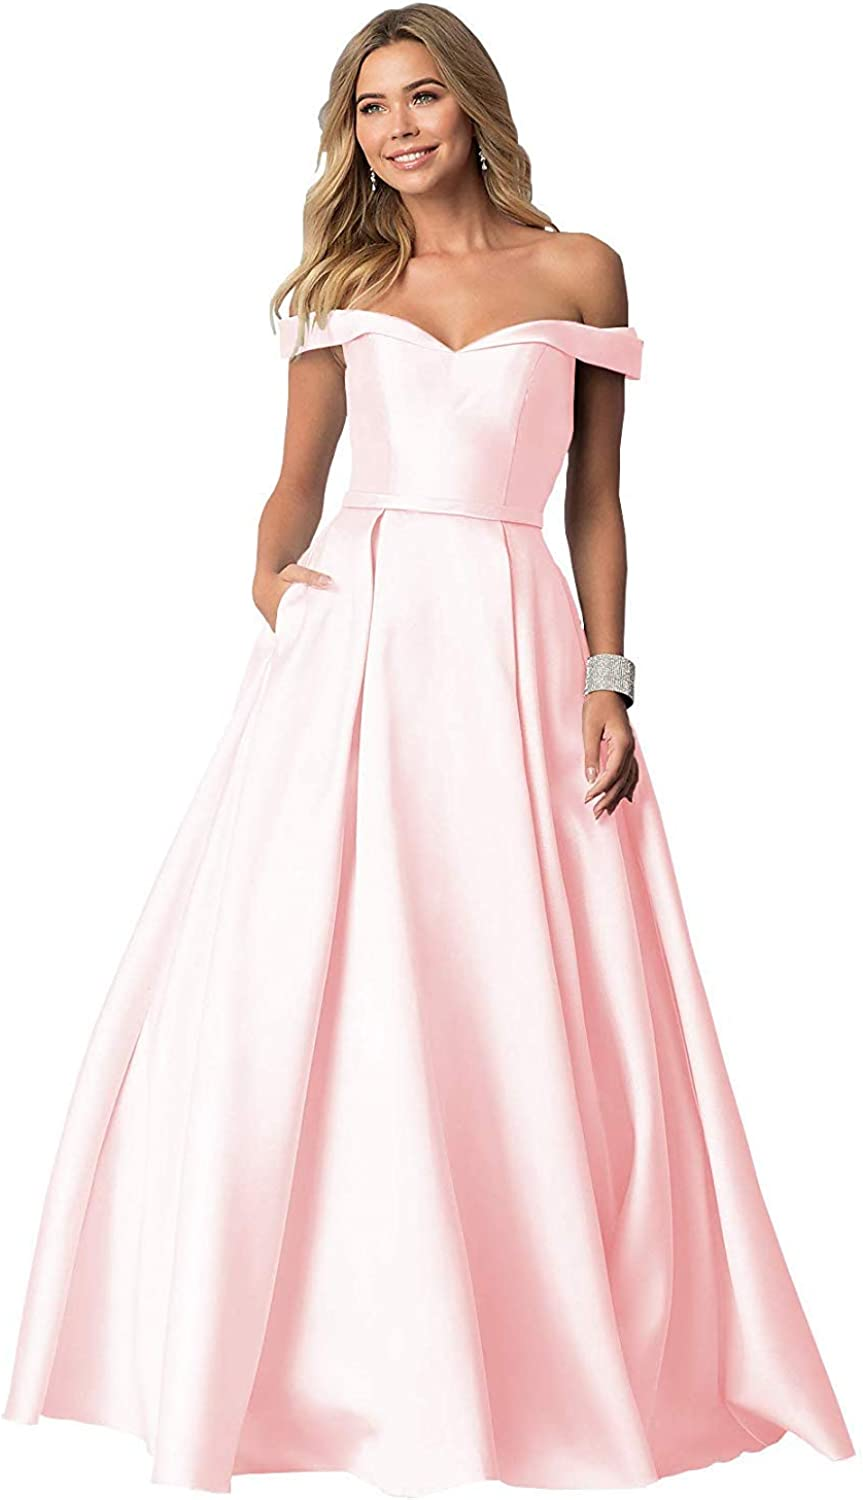 JQLD Women's Sexy Off The Shoulder Long Satin Evening Dresses Formal Prom Gown with Pockets